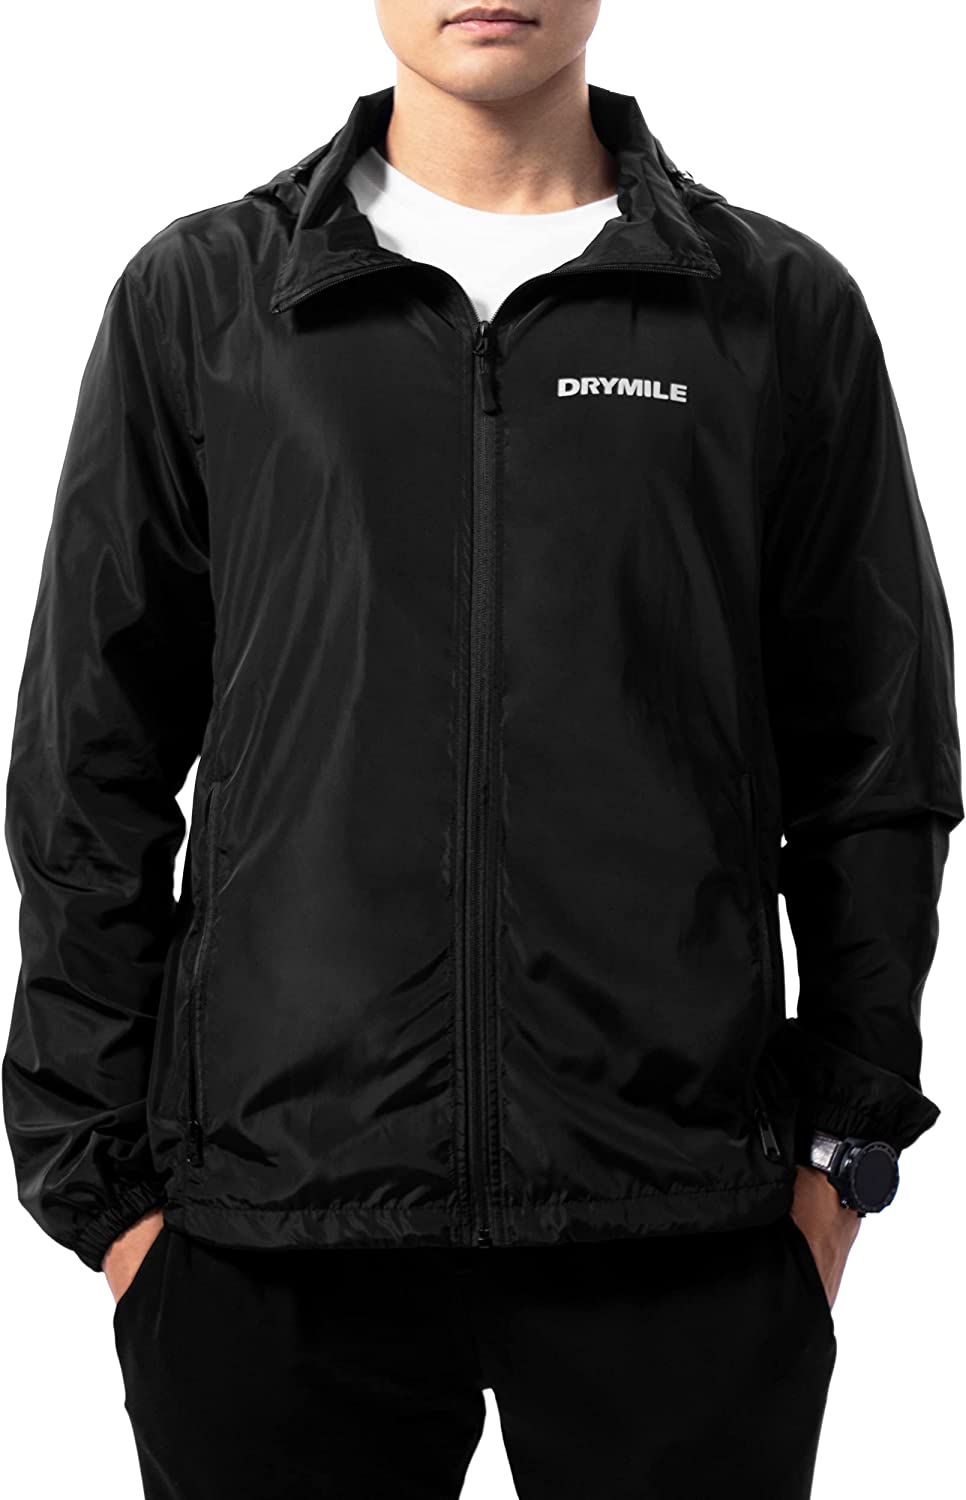 DRYMILE Excursion Men's Lightweight Jacket, Water Resistant, Packable Hooded Windbreaker with Face Shield